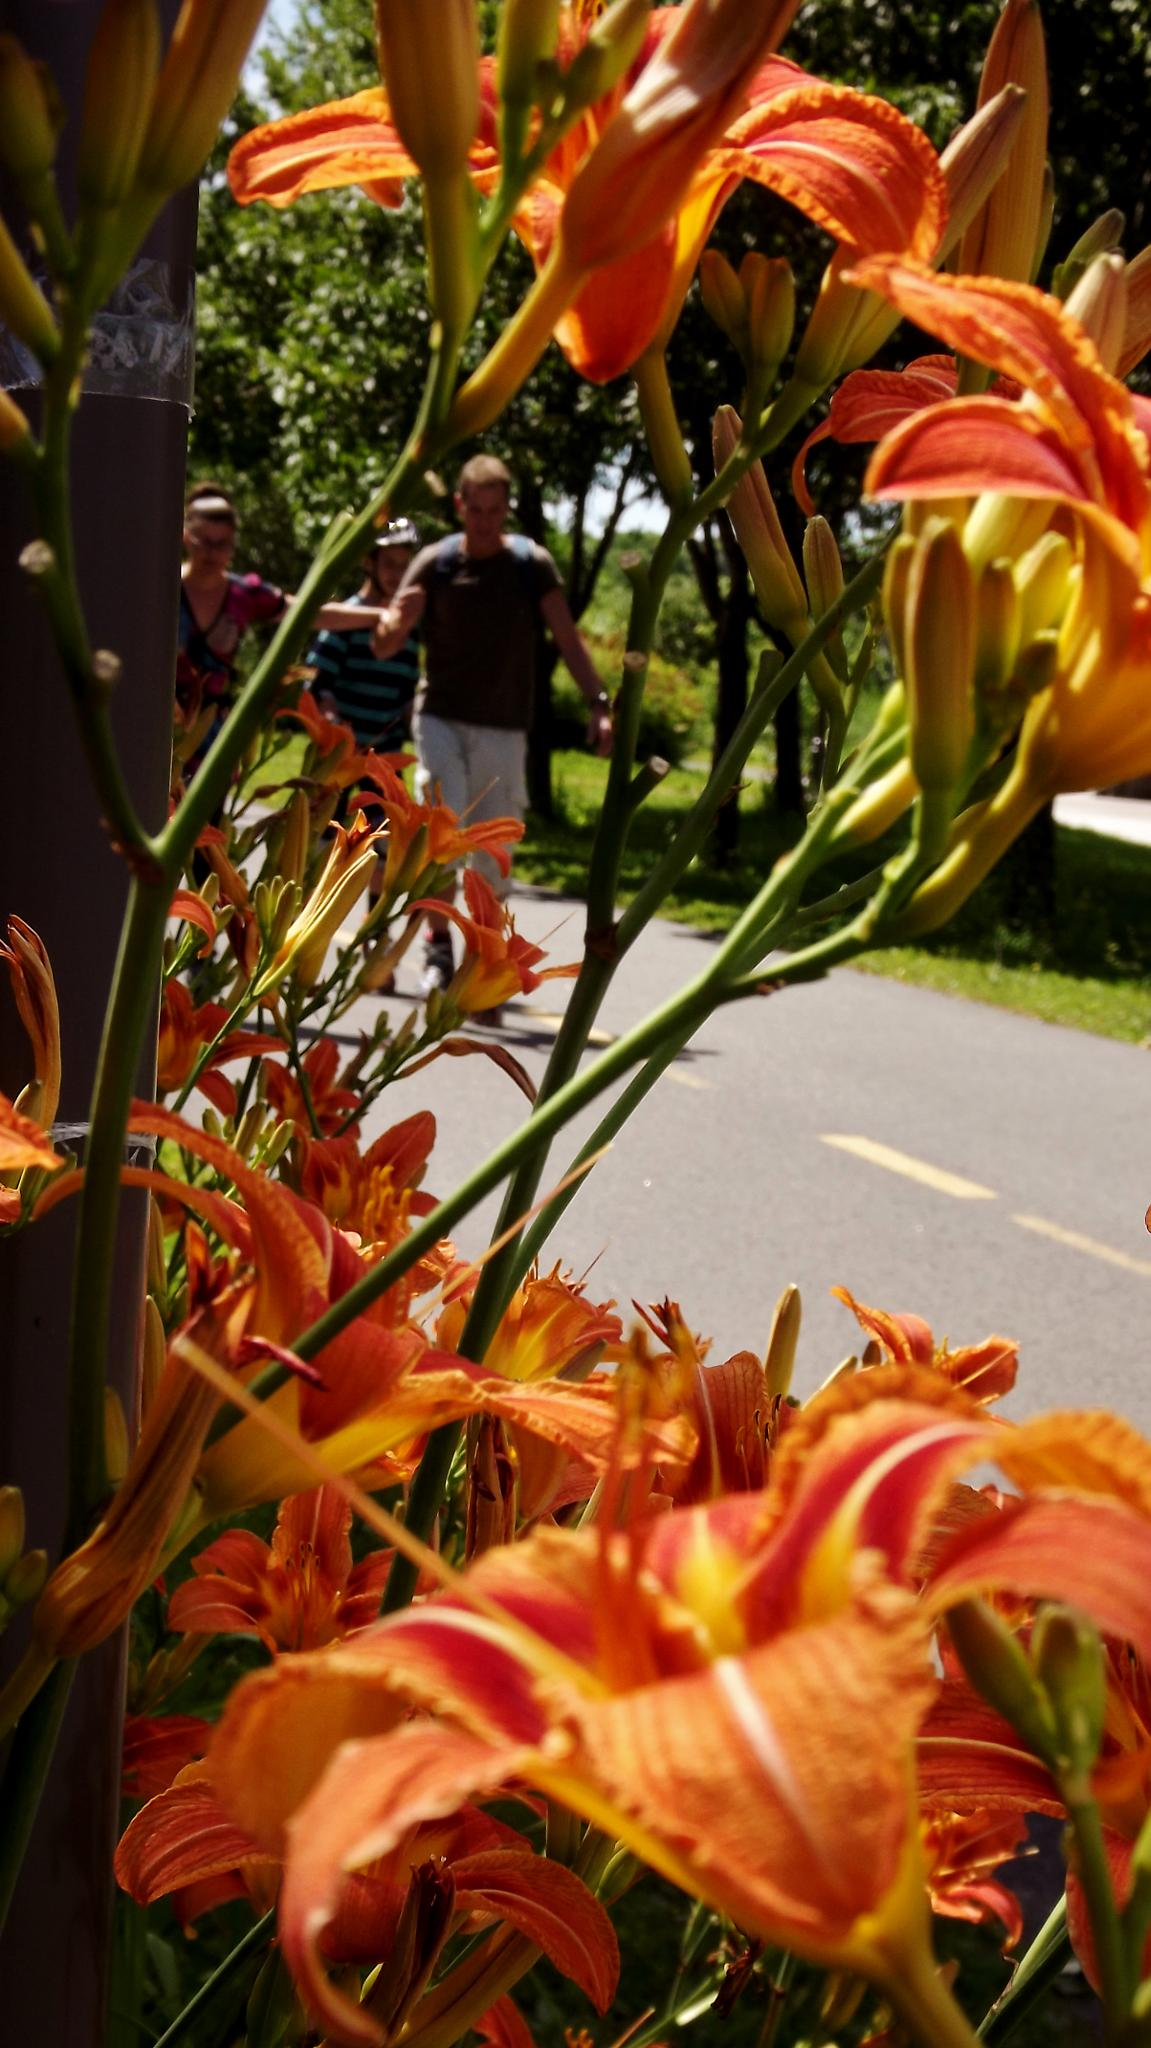 Walking along flowers by real.michaud.5036